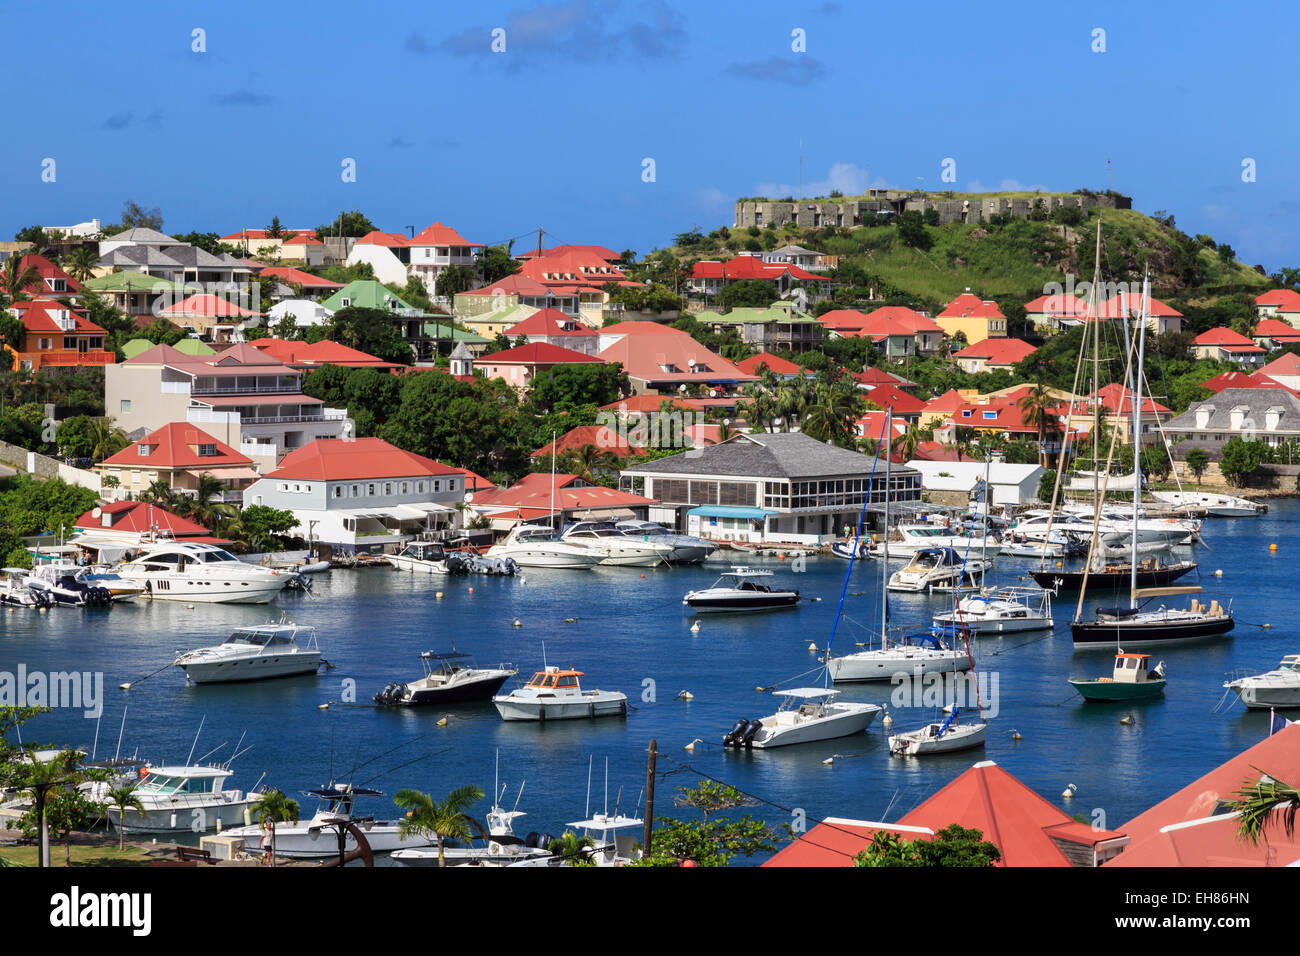 Vista elevada de Fort Oscar y Harbor, Gustavia, Saint Barthelemy (St. Barts) (St. Barth), Indias Occidentales, el Imagen De Stock